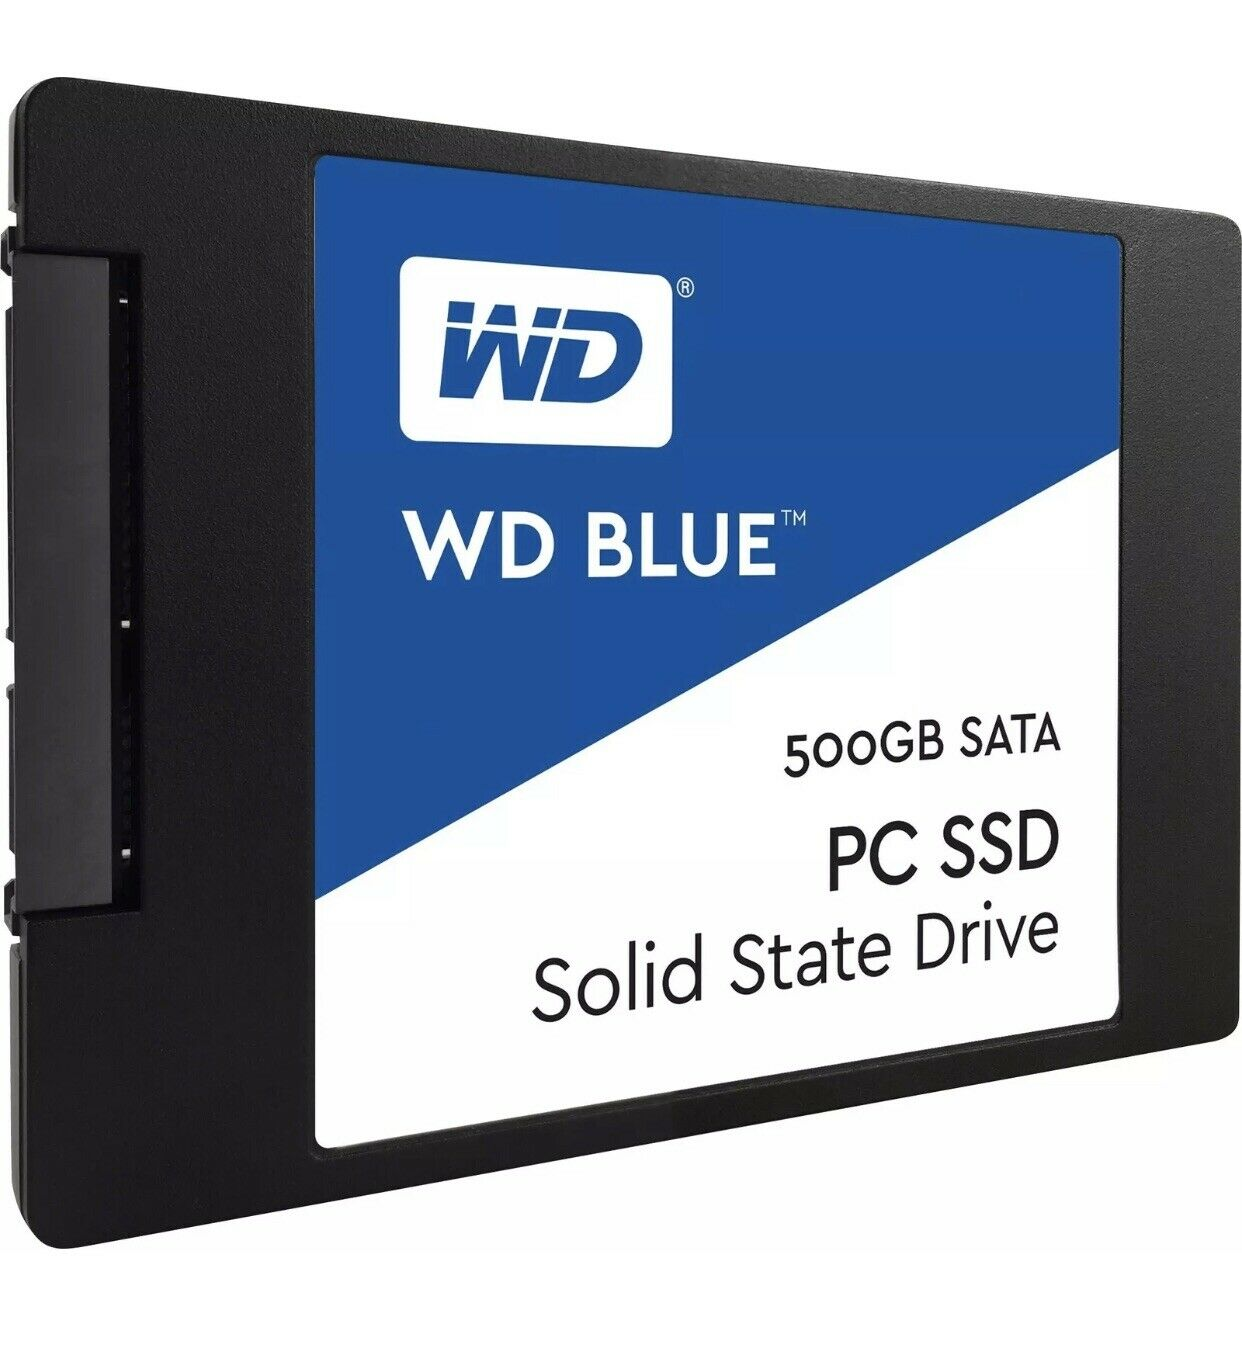 WD - Blue 500GB Internal SATA Solid State Drive‼️✅🌟‼️(SEALED). Buy it now for 51.25